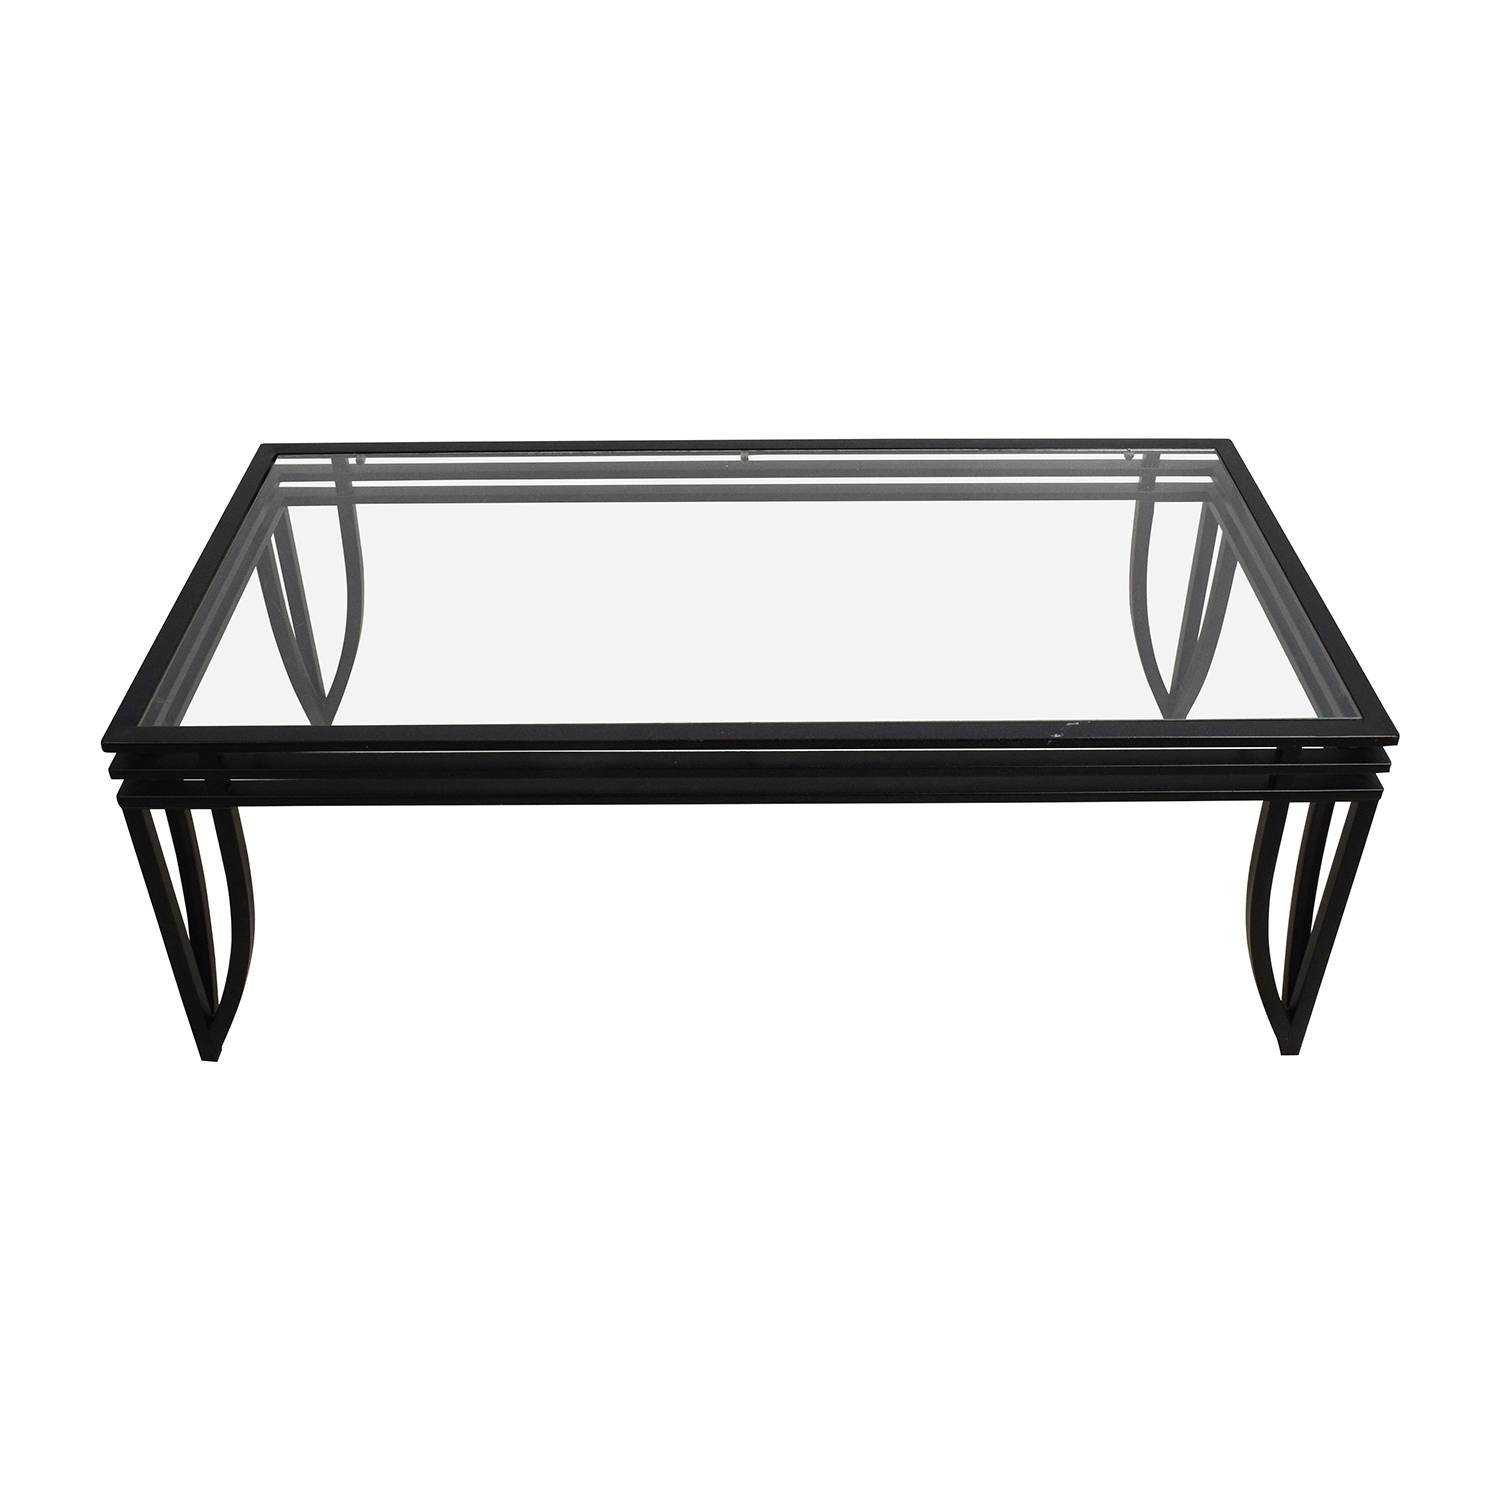 77% Off - Ashley Furniture Ashley Furniture Rectangular Glass And in Rectangle Glass Coffee Table (Image 2 of 15)